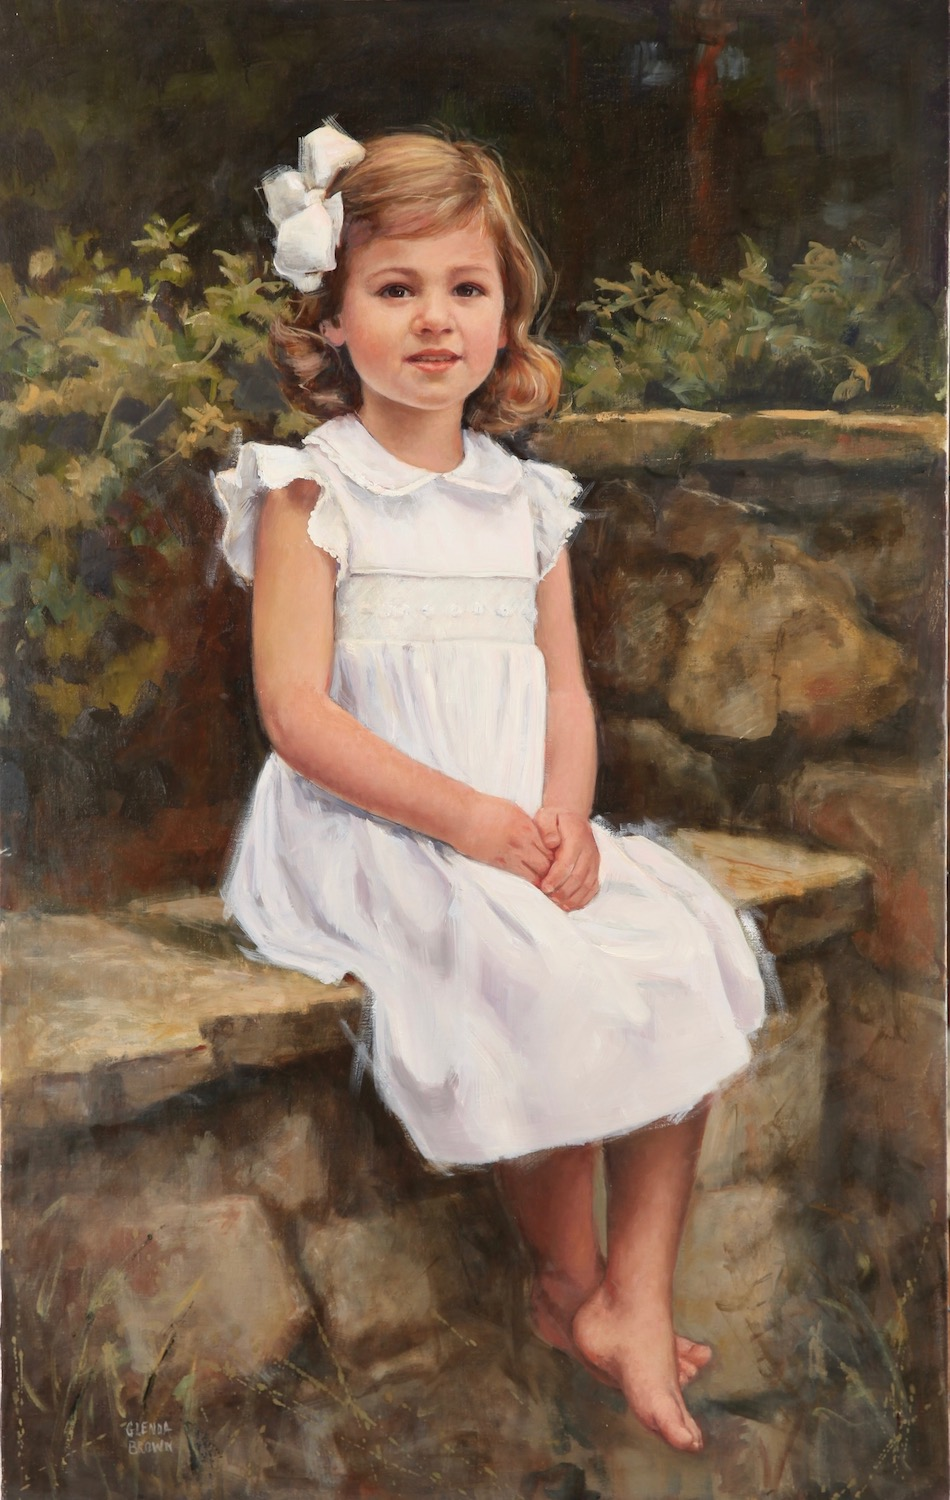 Isabella - Chattanooga Tennessee Oil on Linen - 37x27